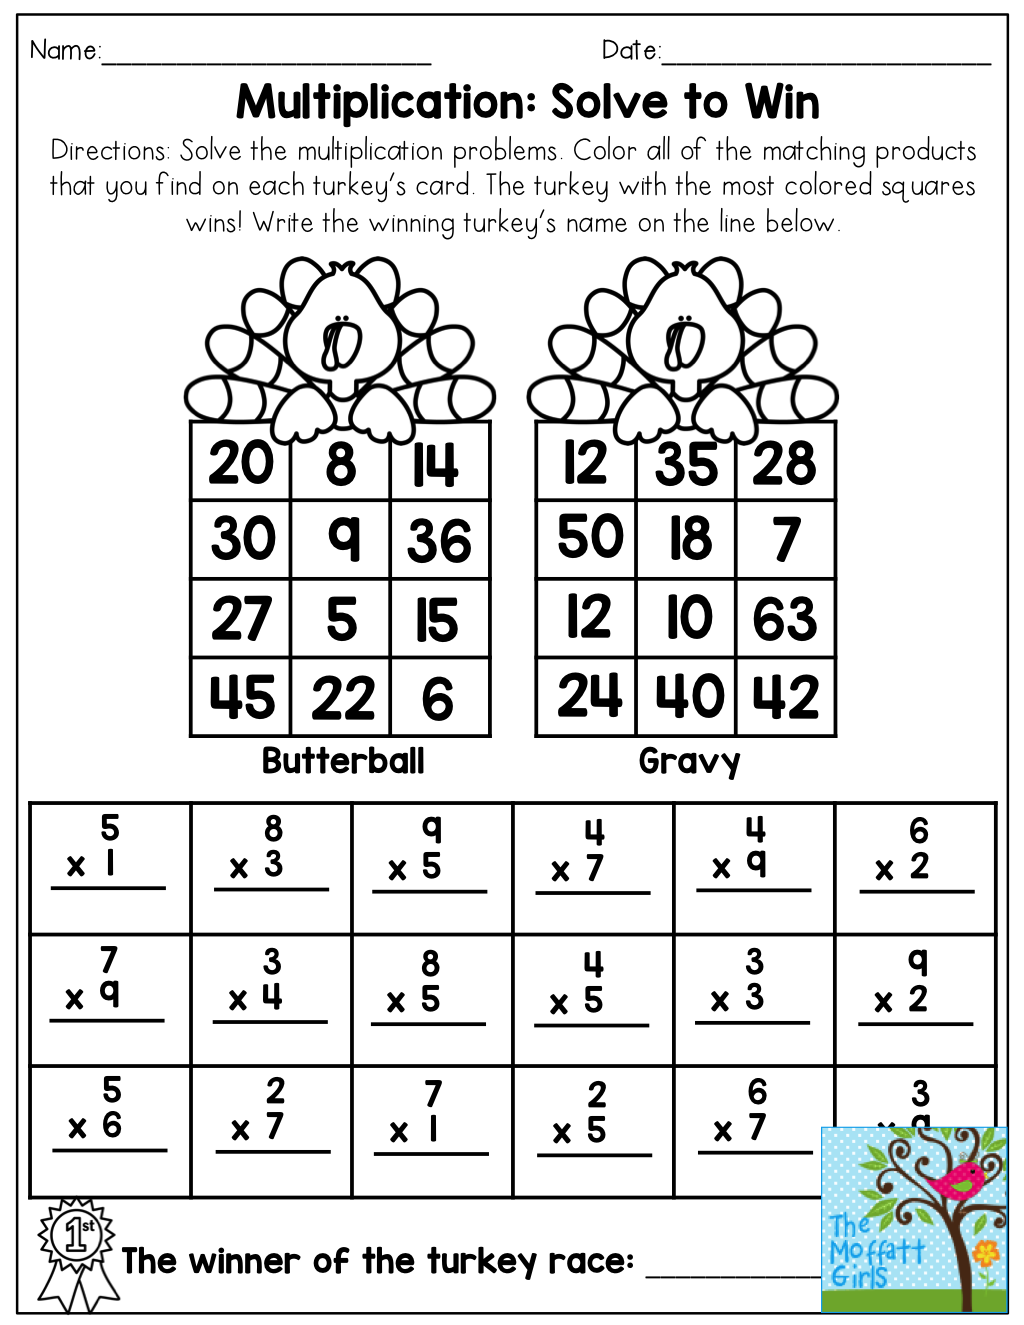 Multiplication Solve To Win See Which Turkey Wins The Race By Solving The Math Problems And